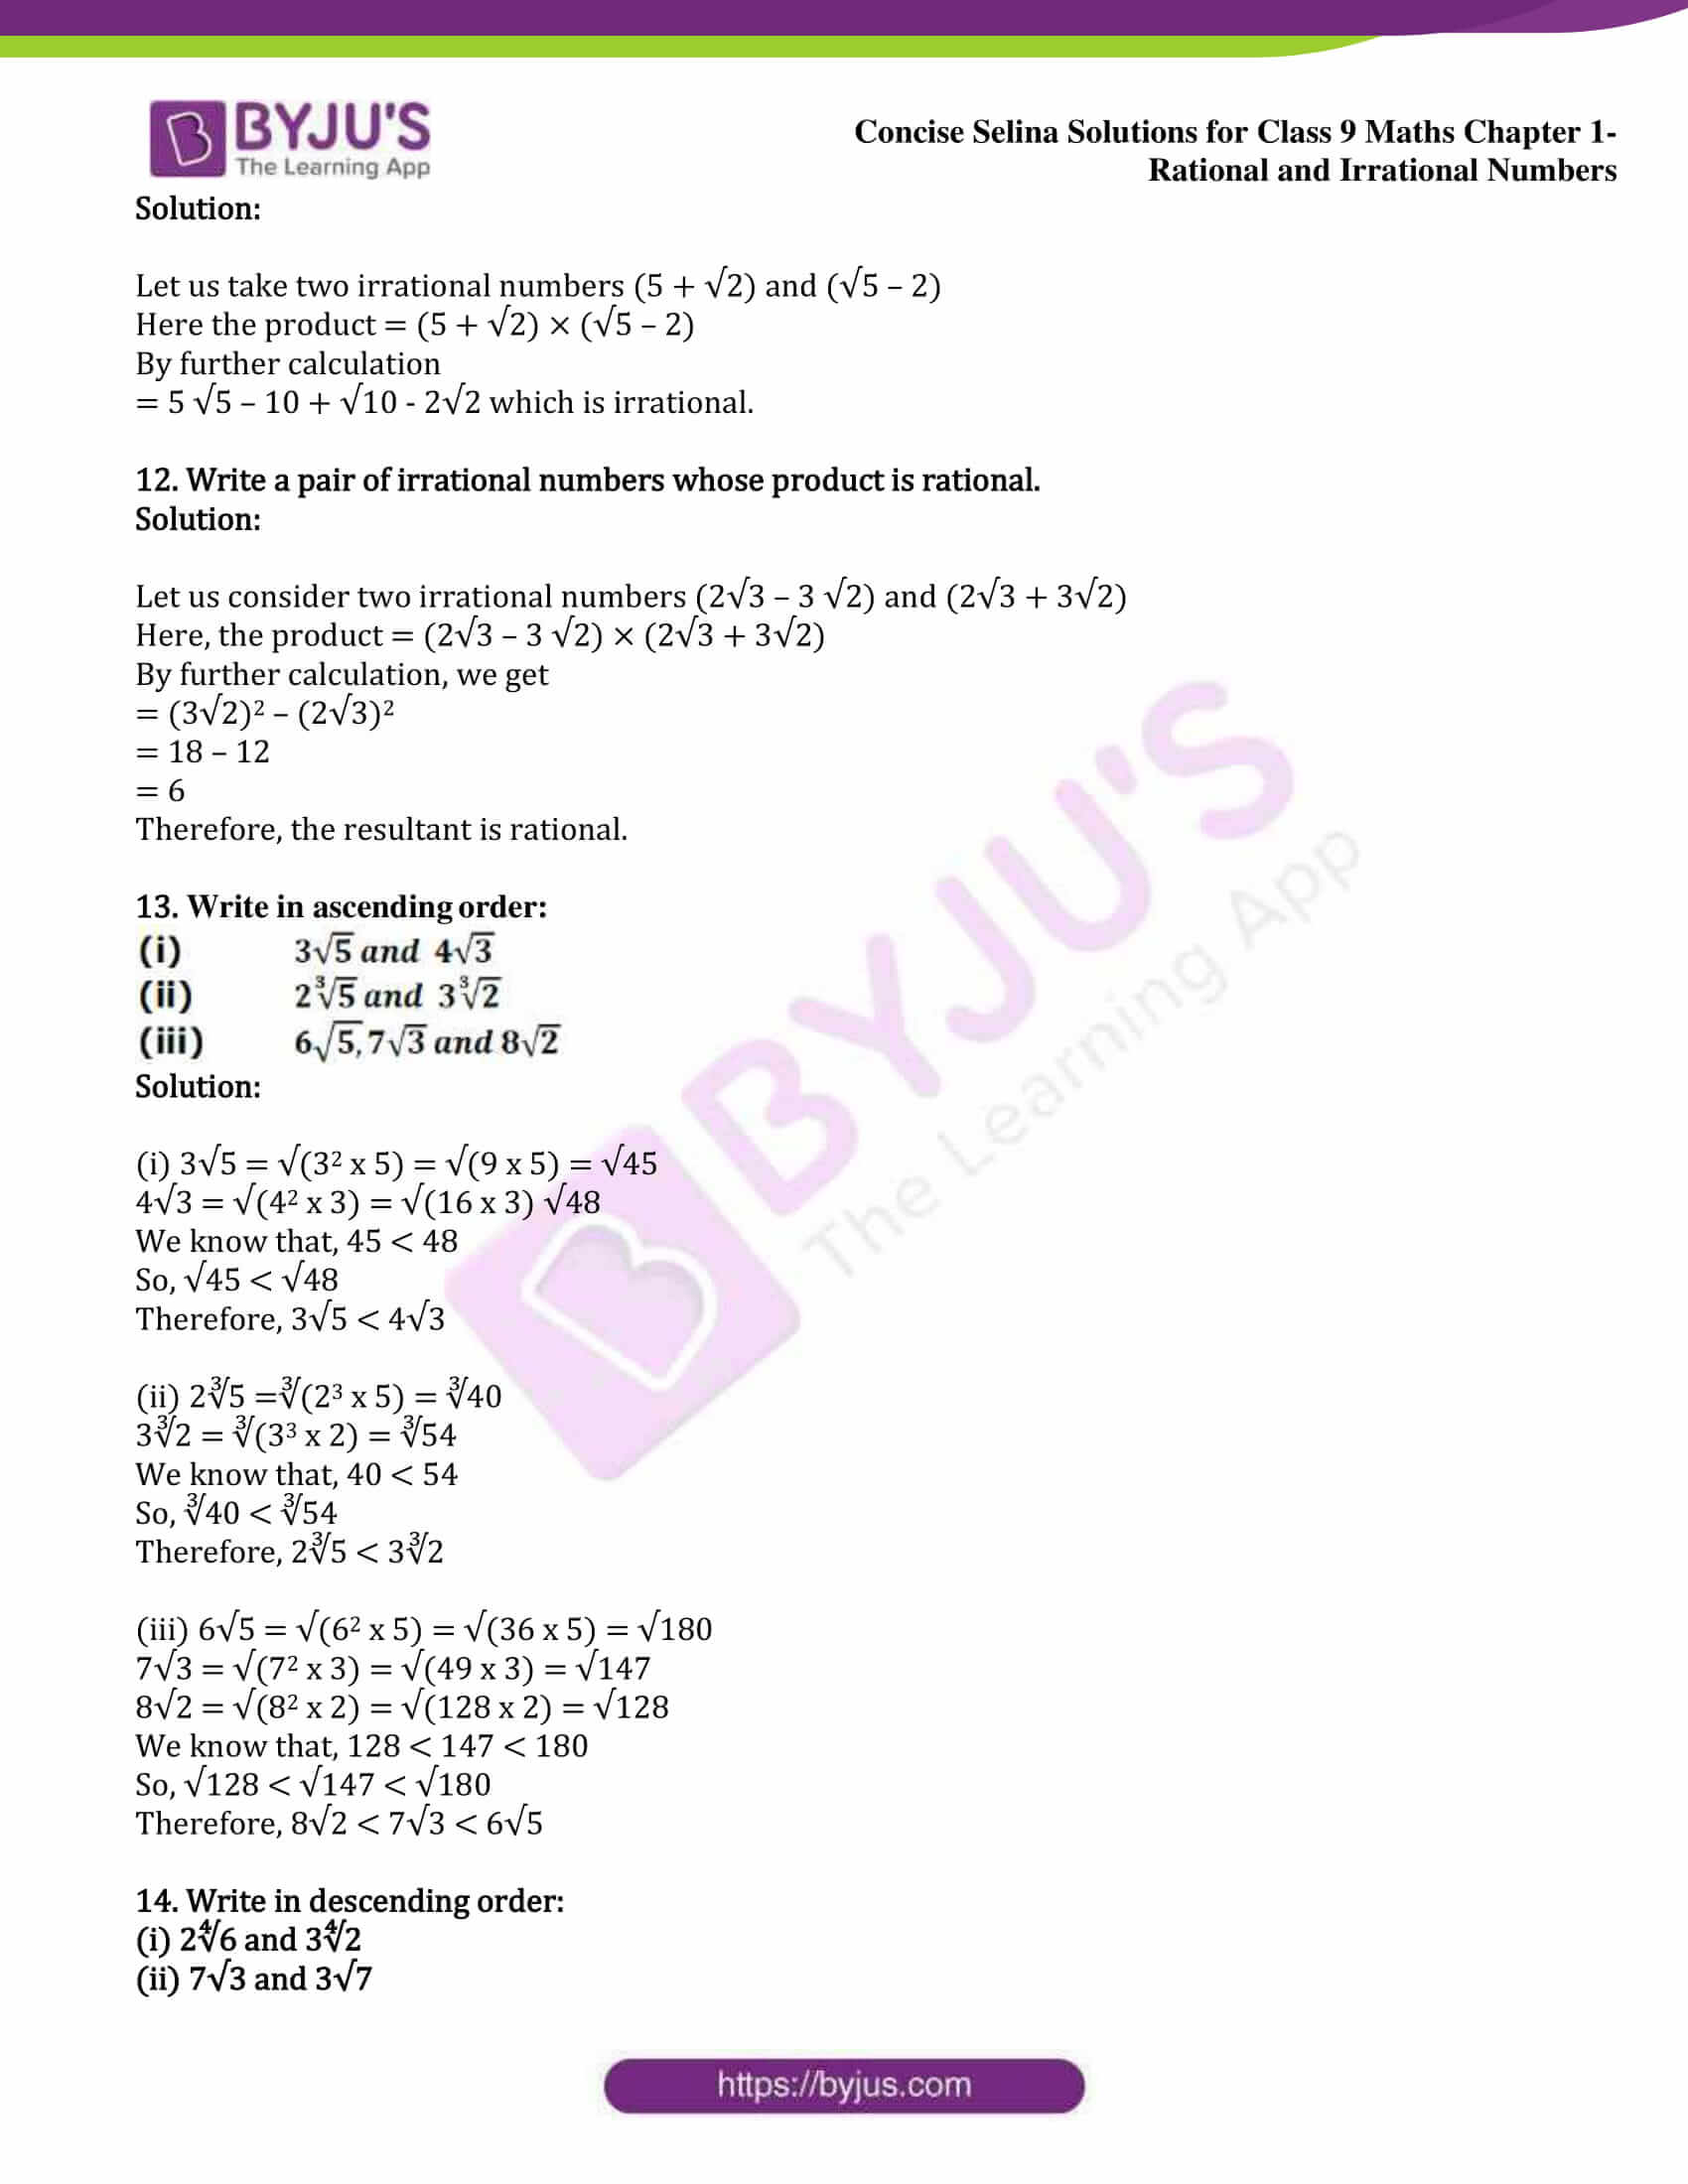 icse class 9 maths may13 selina solutions chapter 1 rational and irrational numbers 11